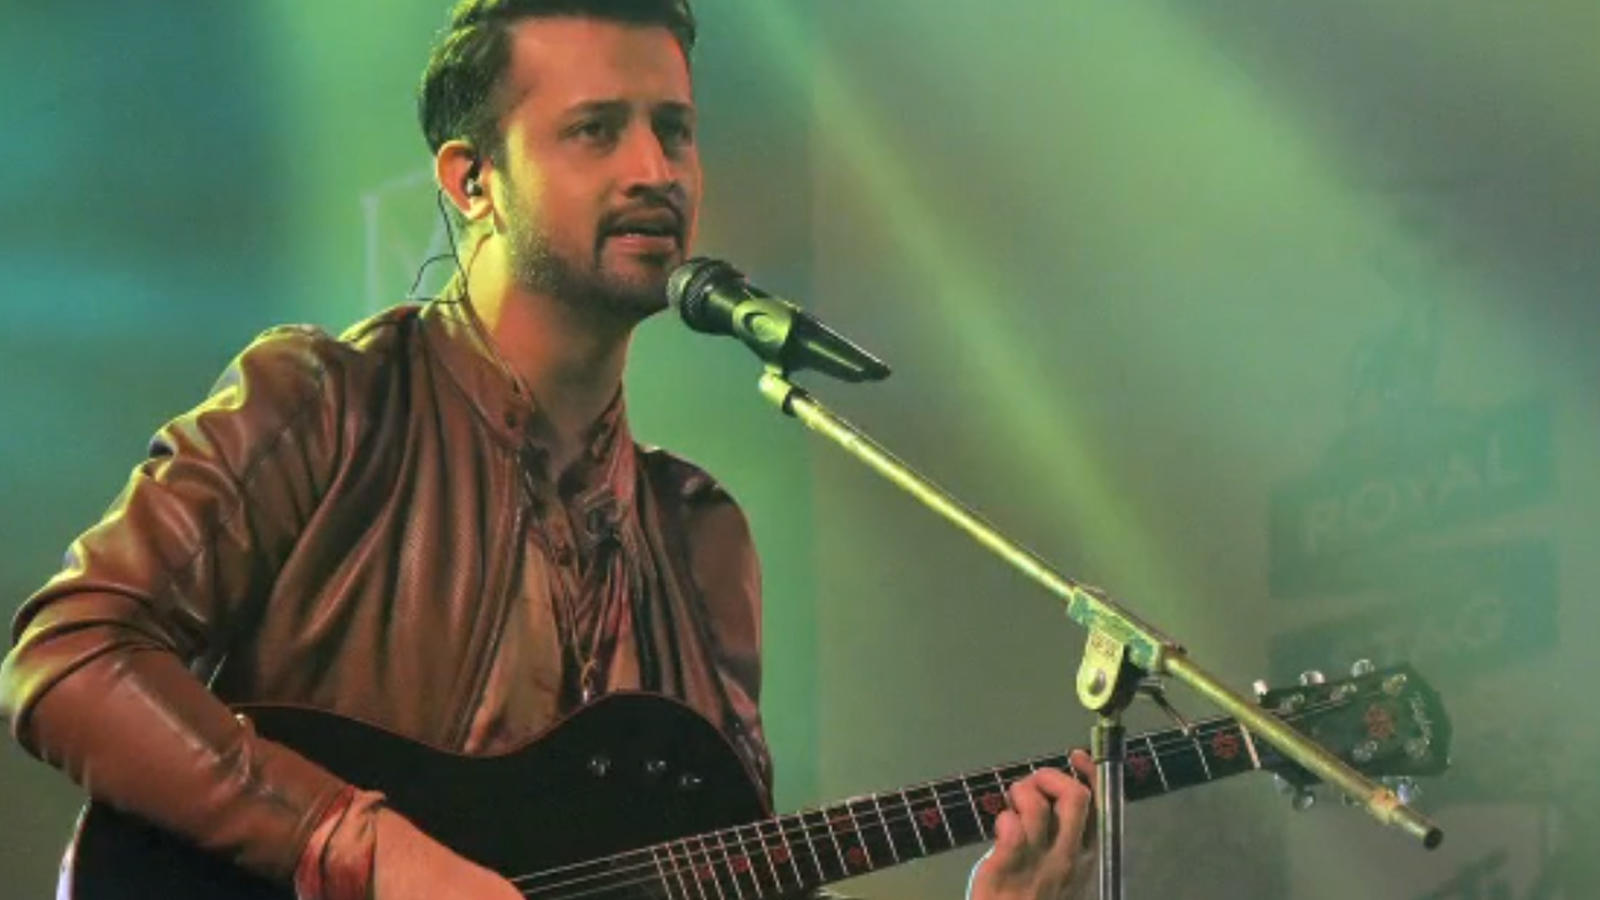 pulwama-attack-atif-aslams-song-unlisted-nothing-personal-says-composer-arko